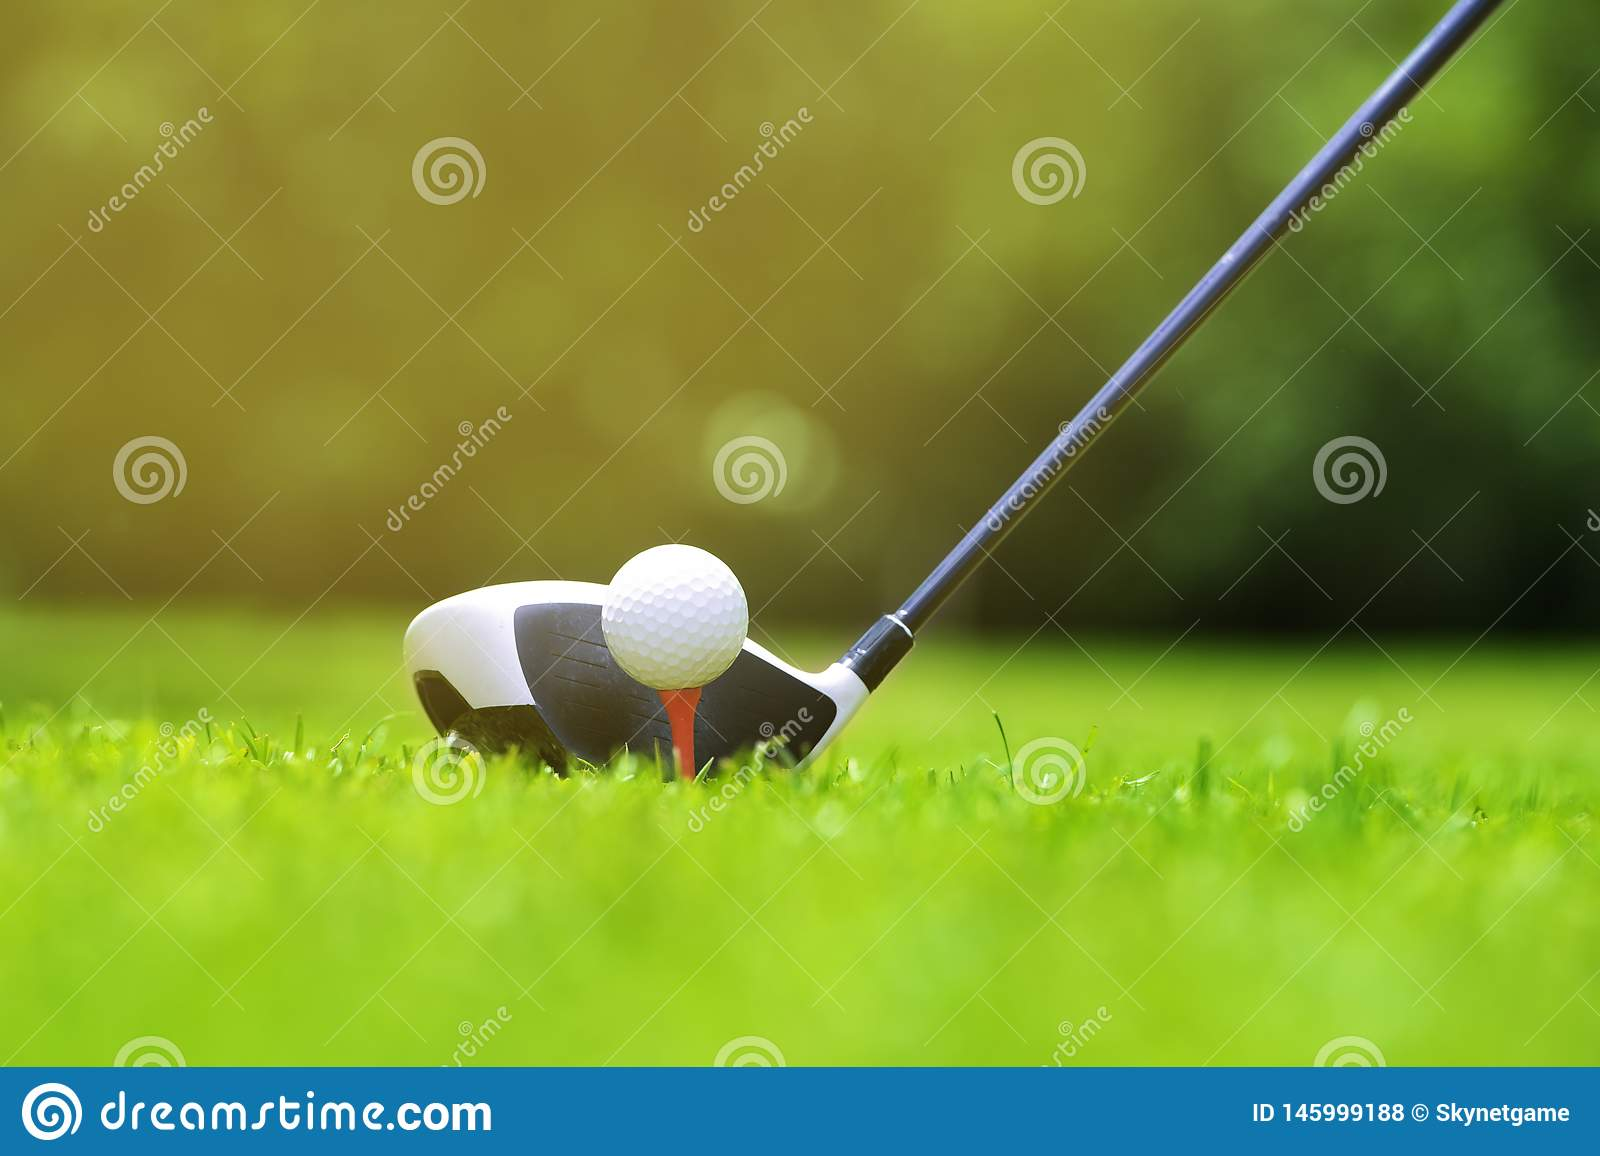 Golf ball on tee in front of driver on a gold course grass green field,the driver positioned ready to hit the ball